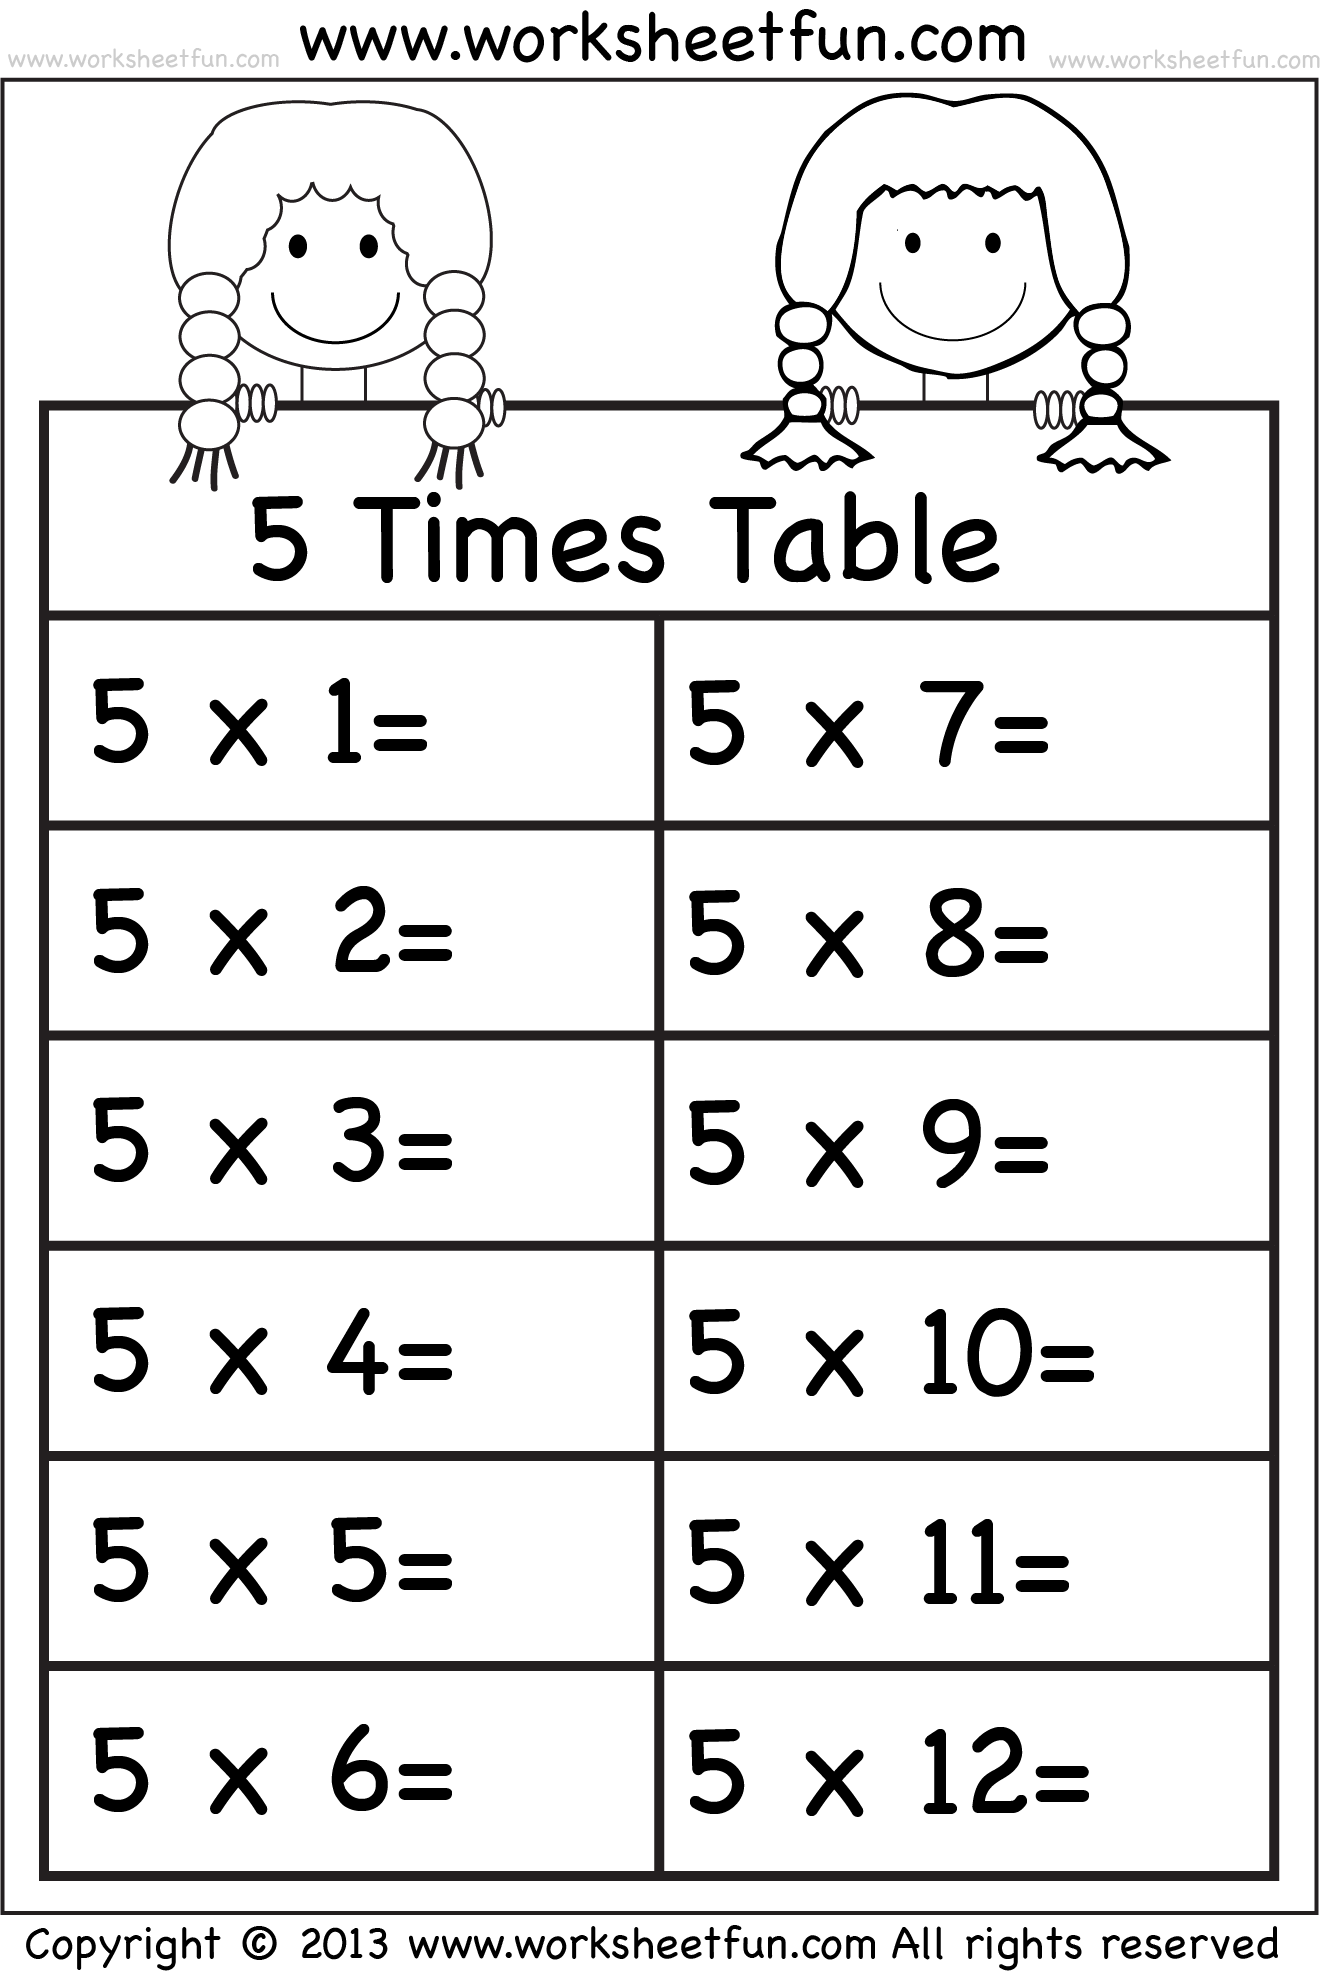 Times Tables Worksheets 2 3 4 5 6 7 8 9 10 11 and 12 – 5 Multiplication Table Worksheet